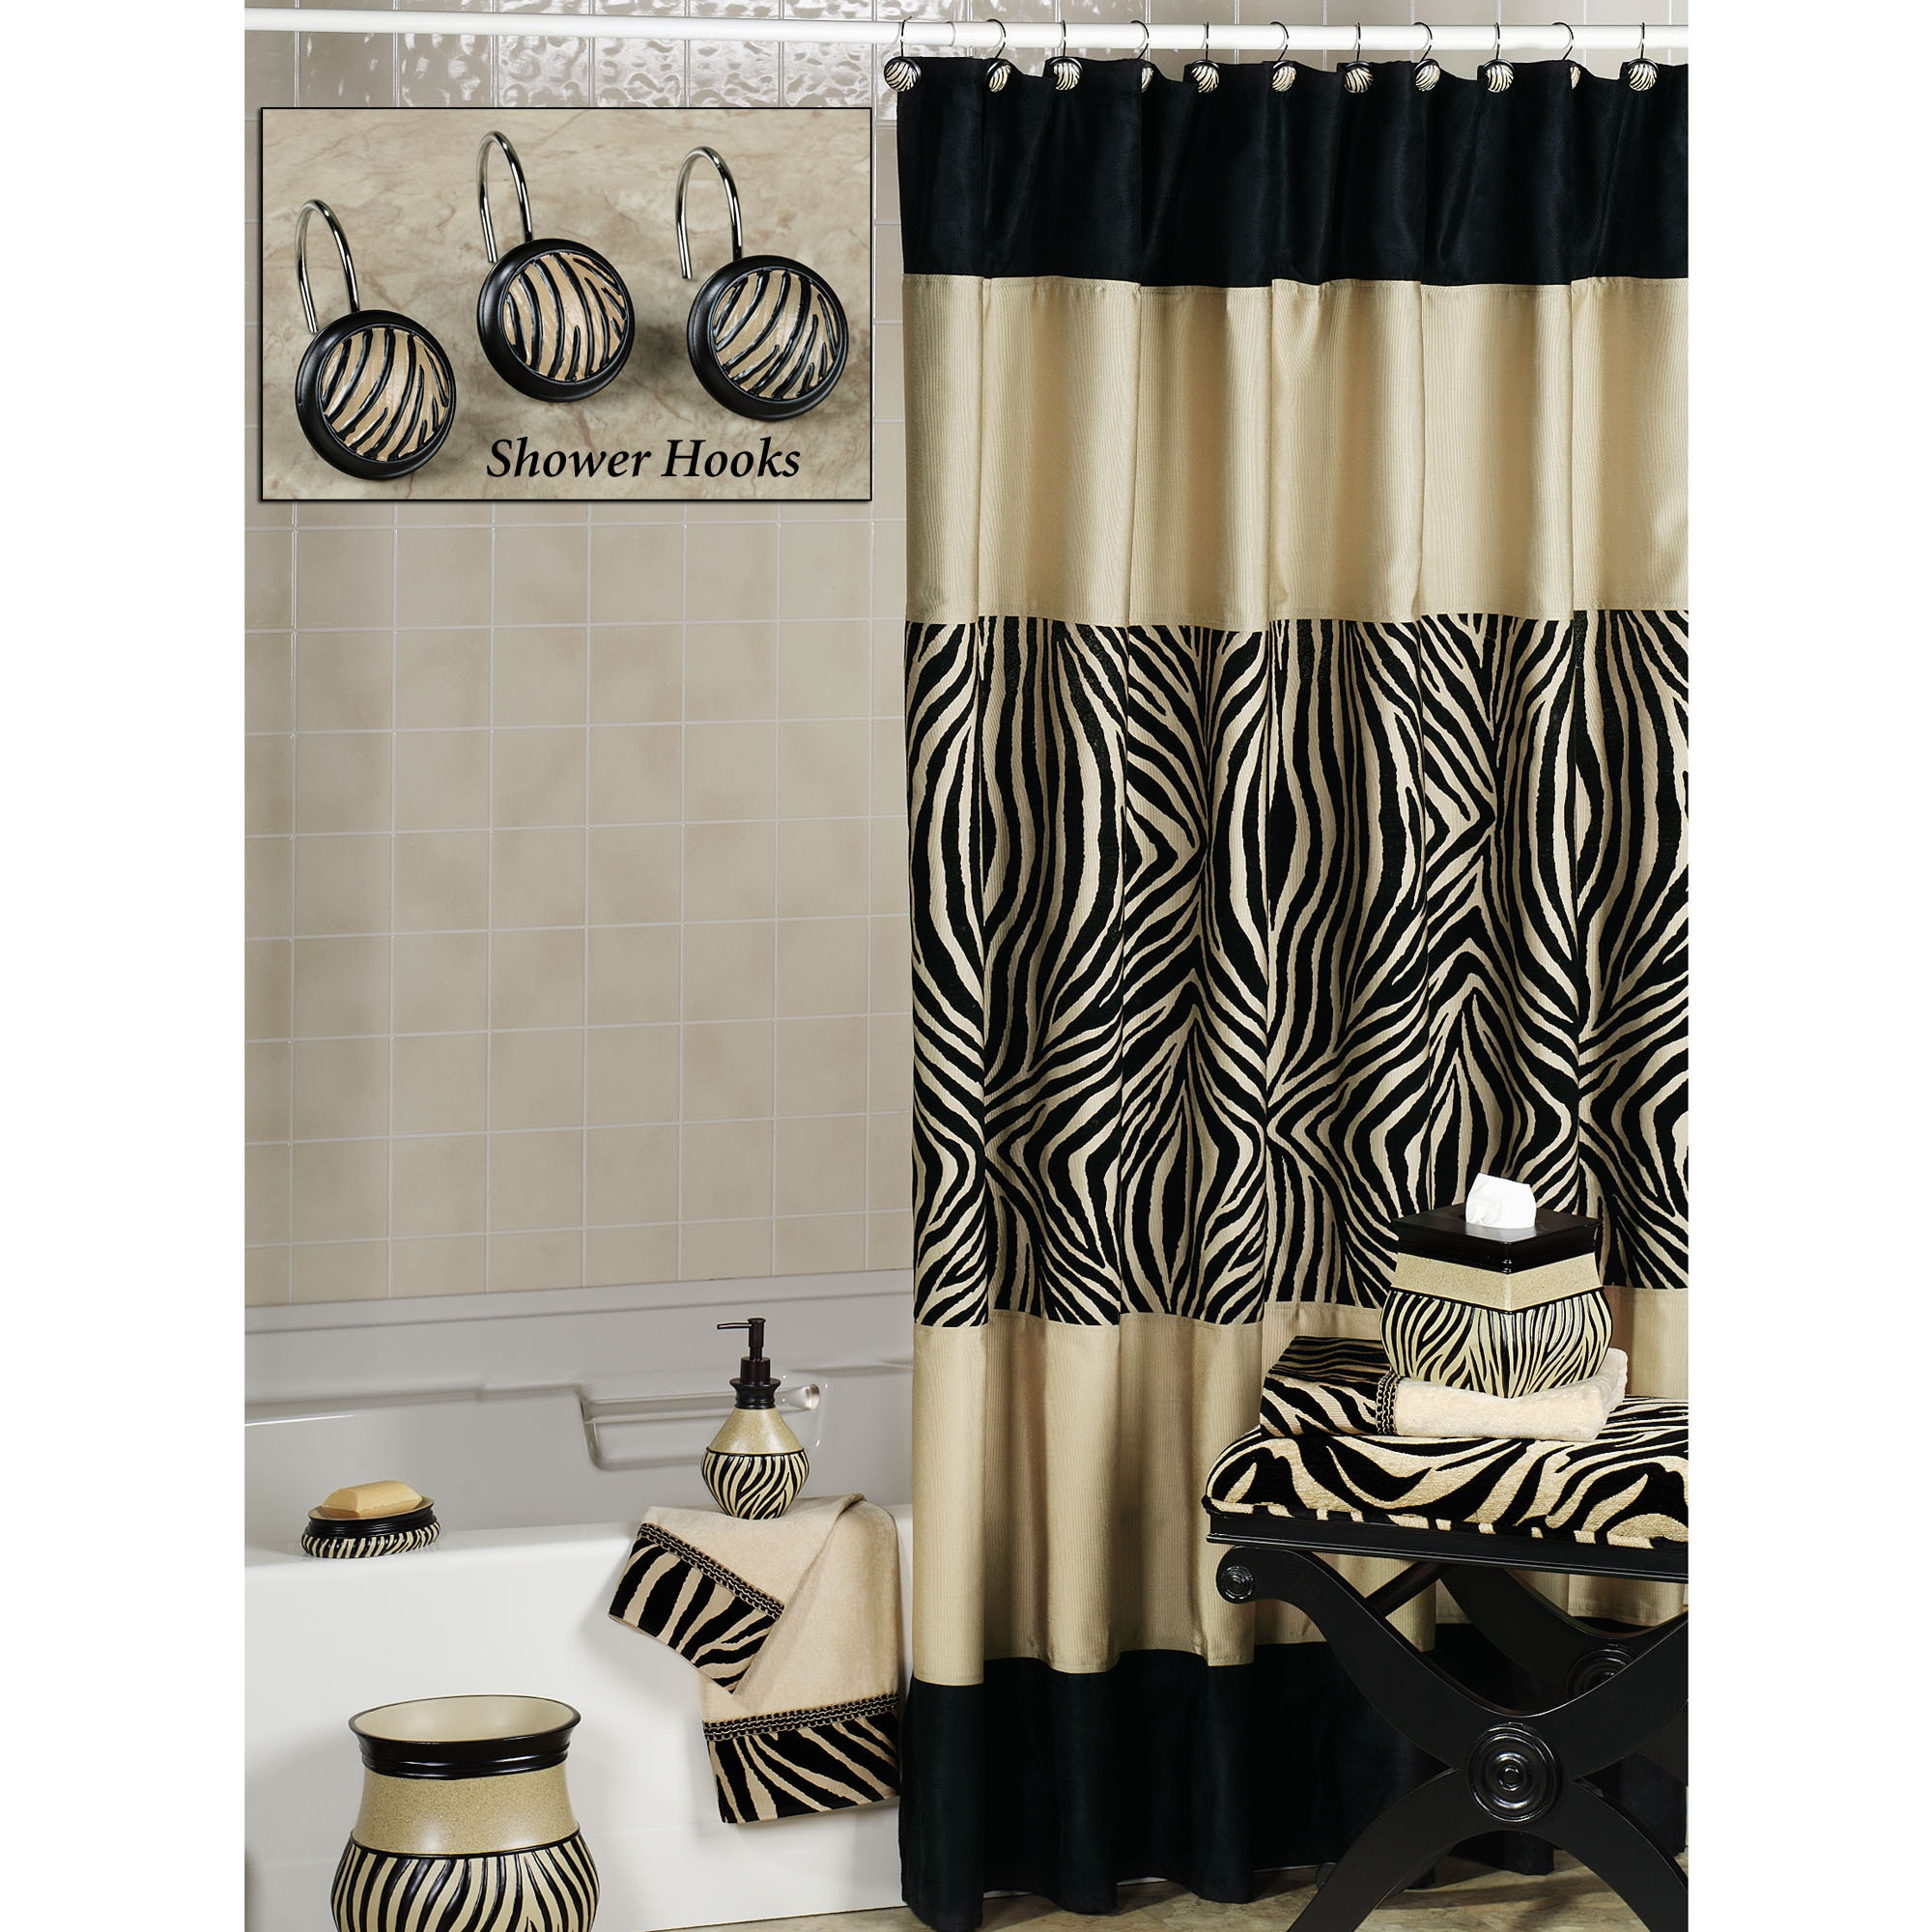 knowee curtains of gold casa awesome shower paris teen best walmart girls for curtain